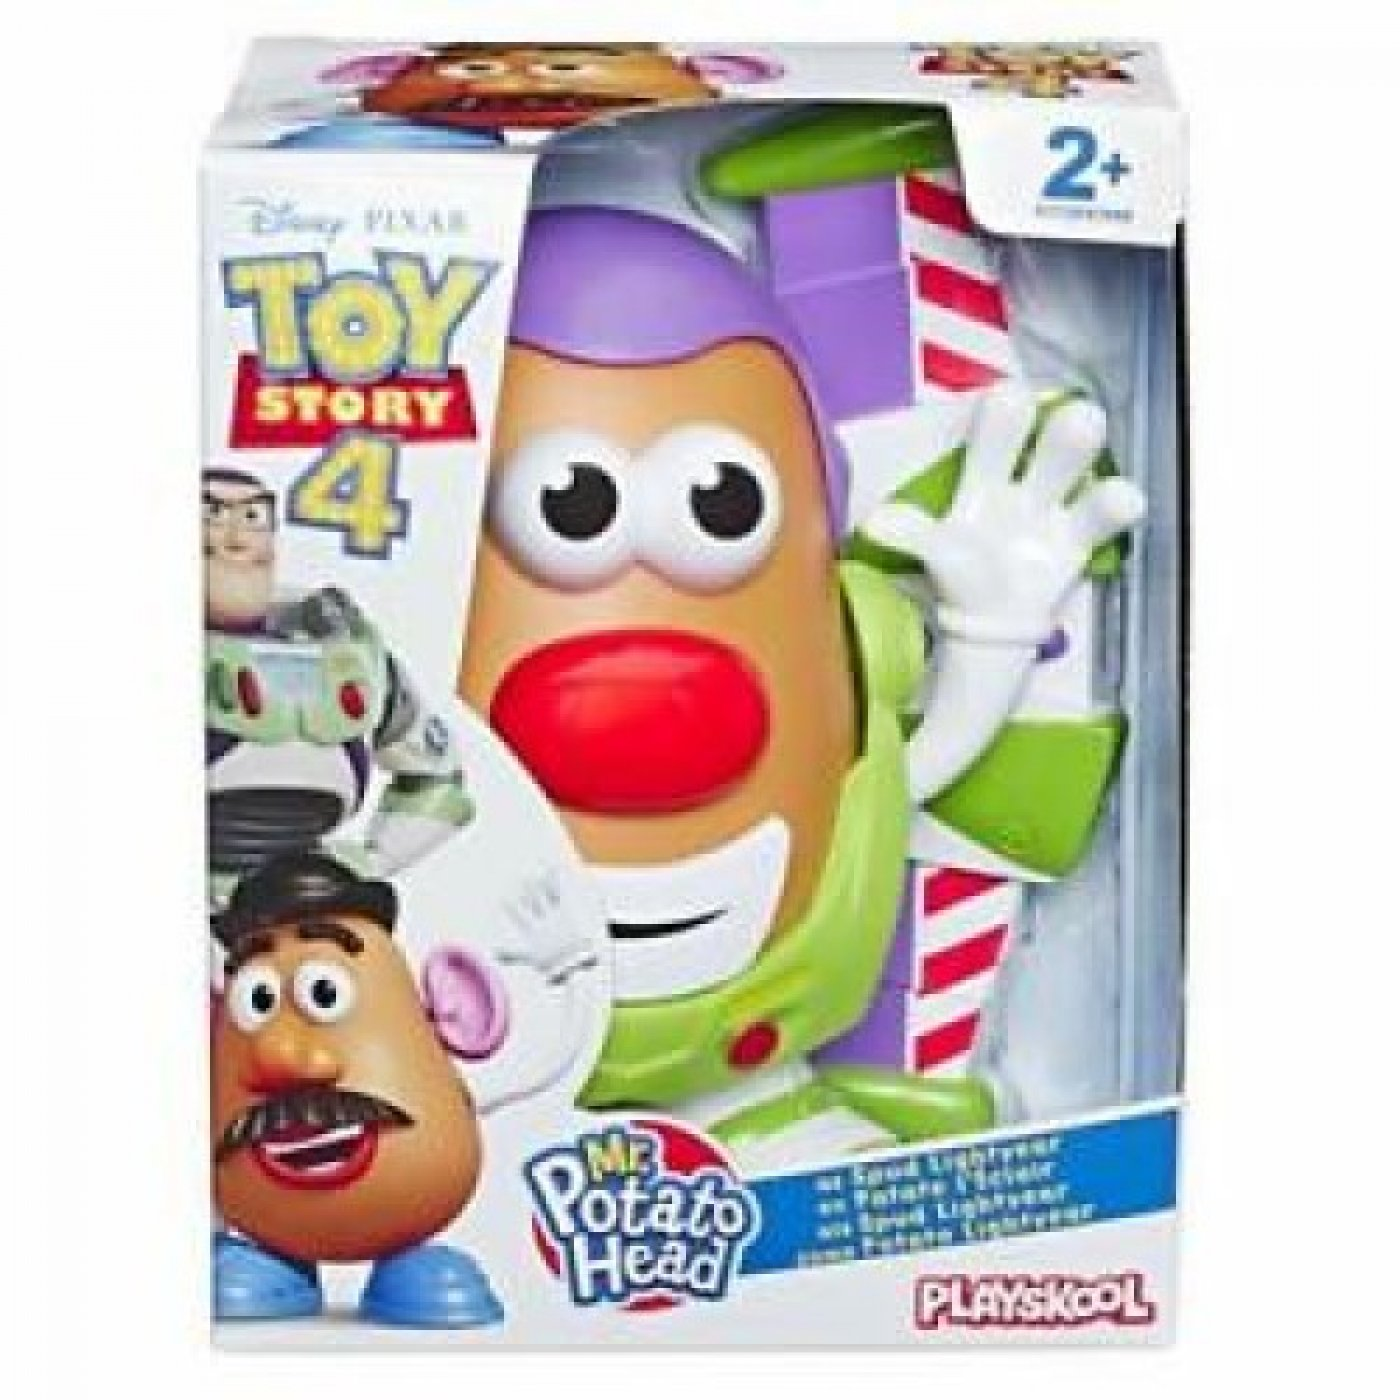 Mr Potato Head de Buzz Lightyear